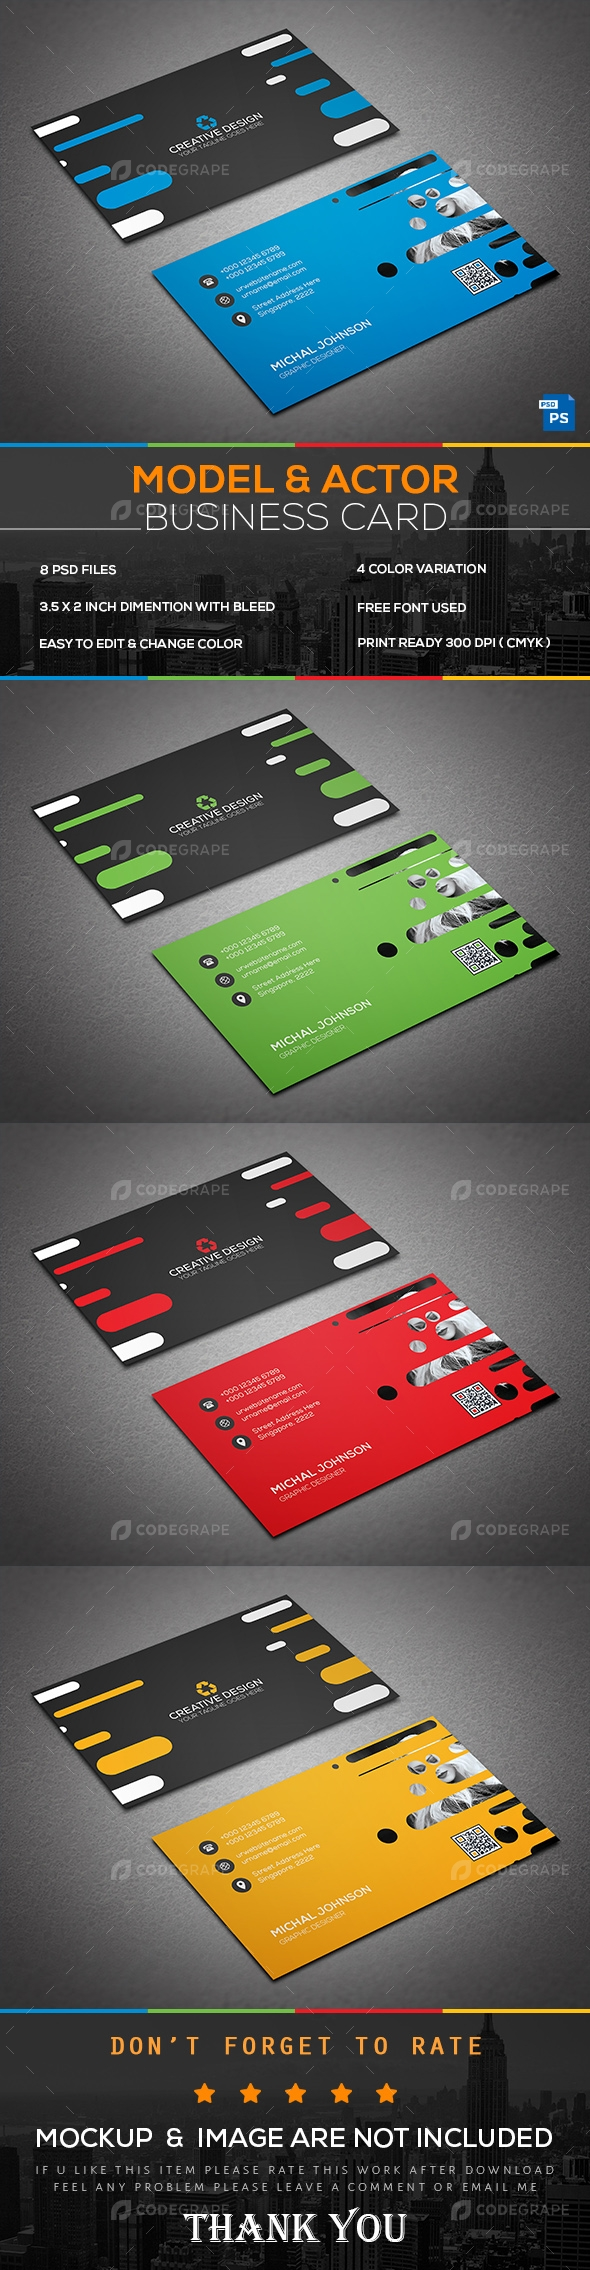 Model & Actor Business Card